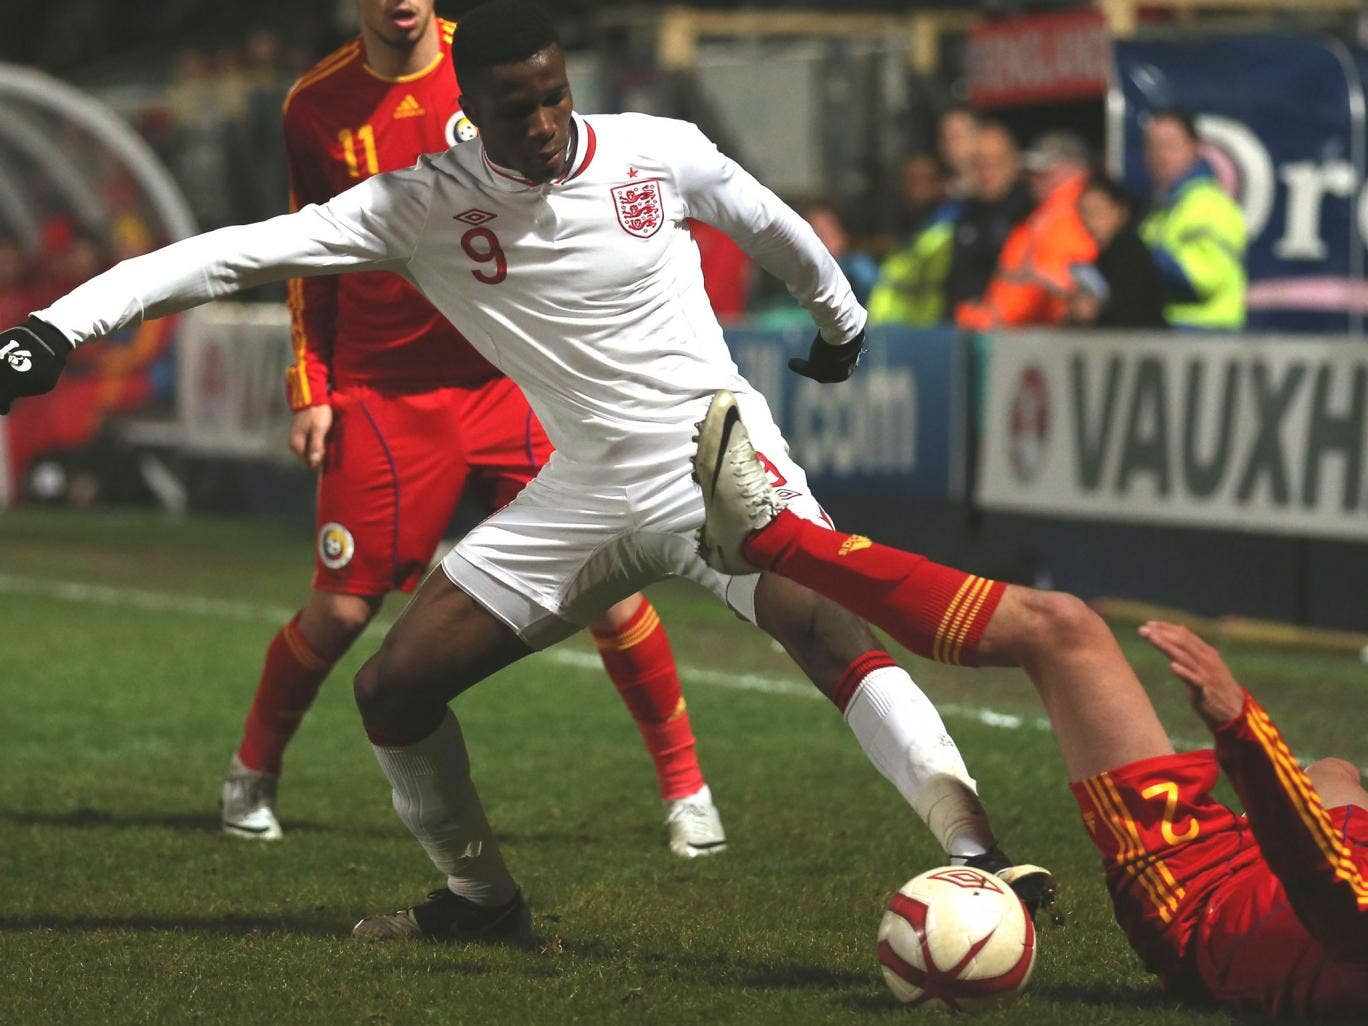 Zaha, who opened the scoring for England, steals the ball